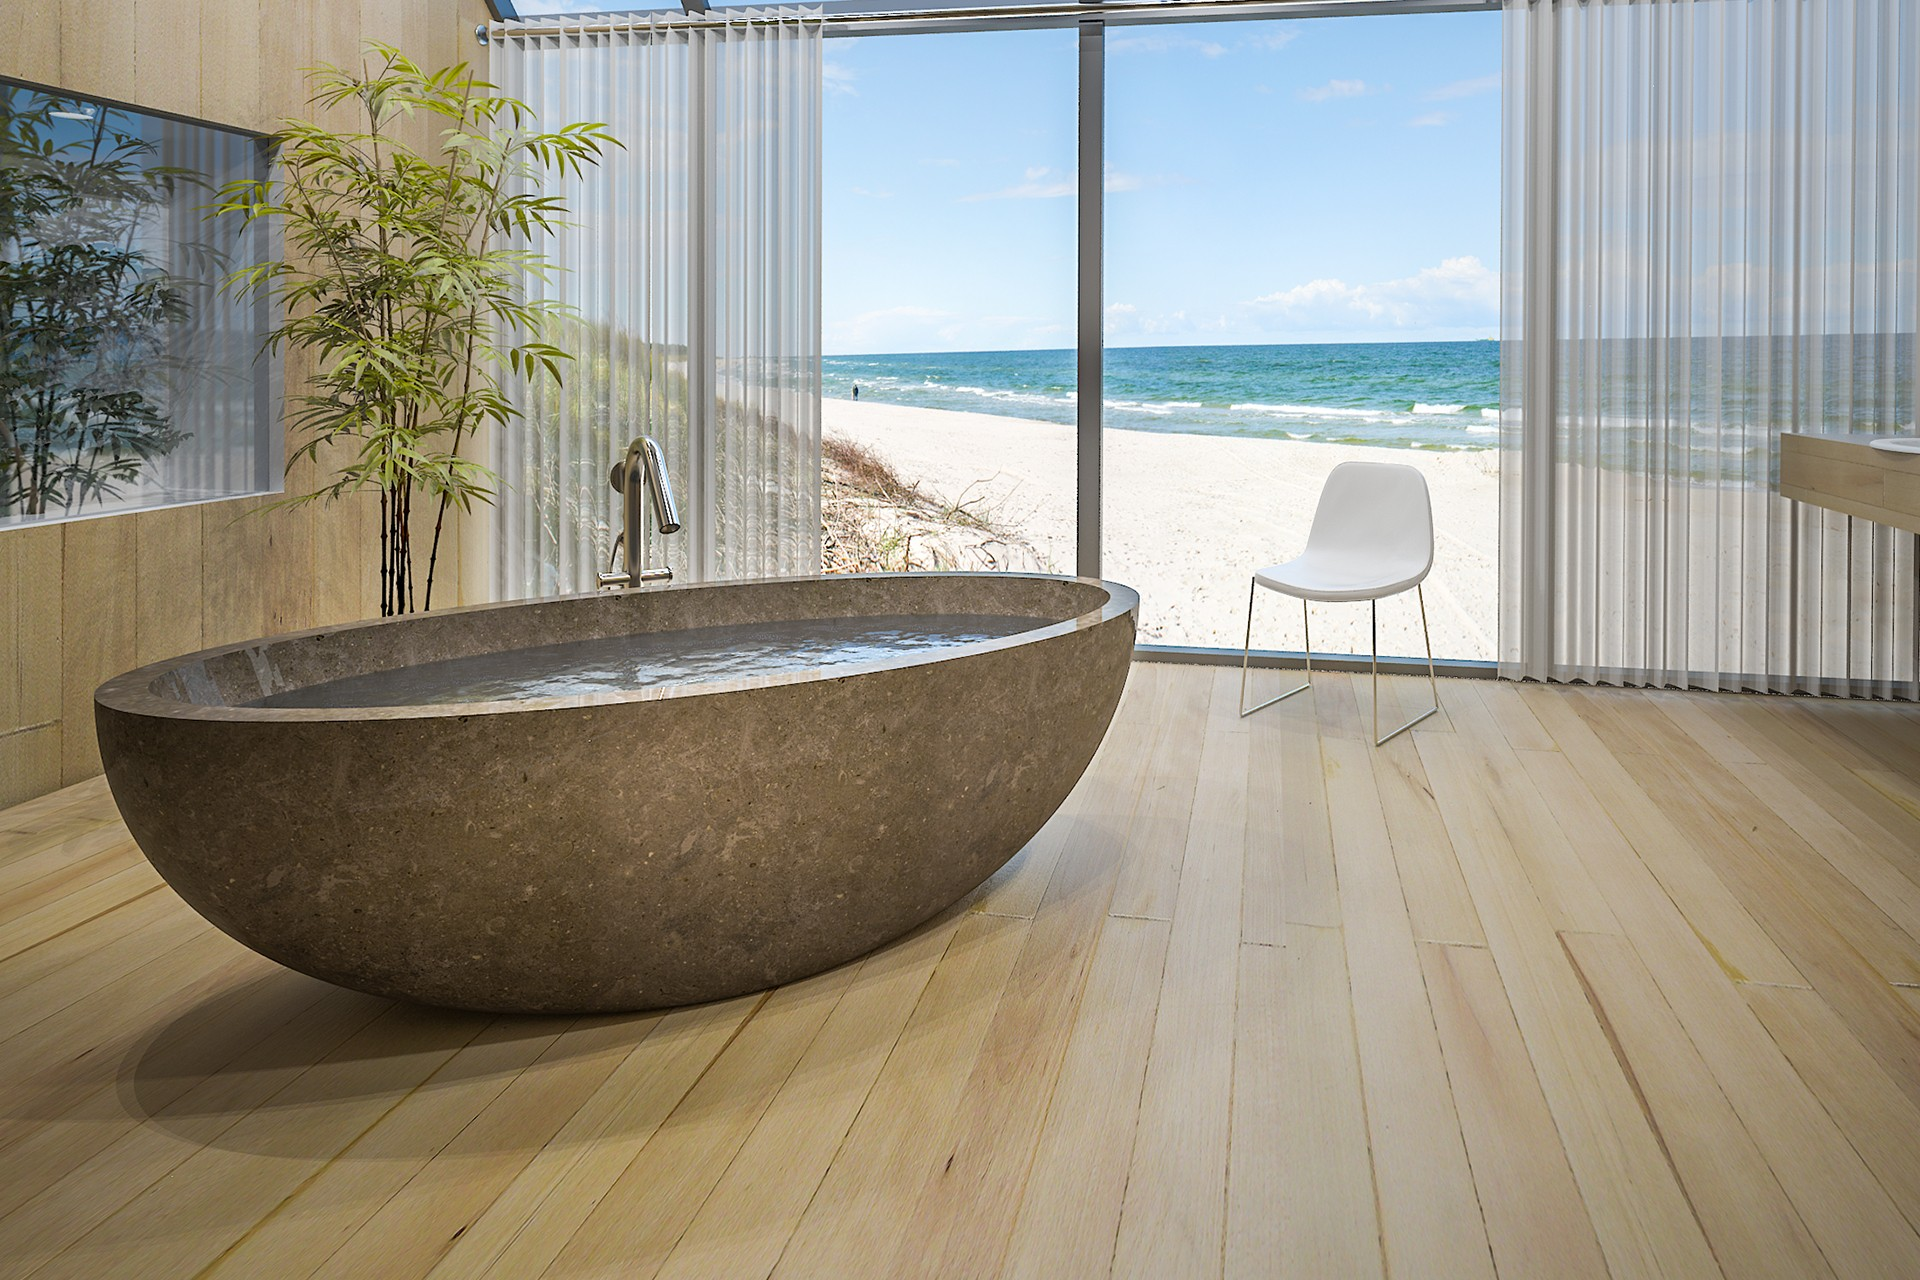 limestone bathtub